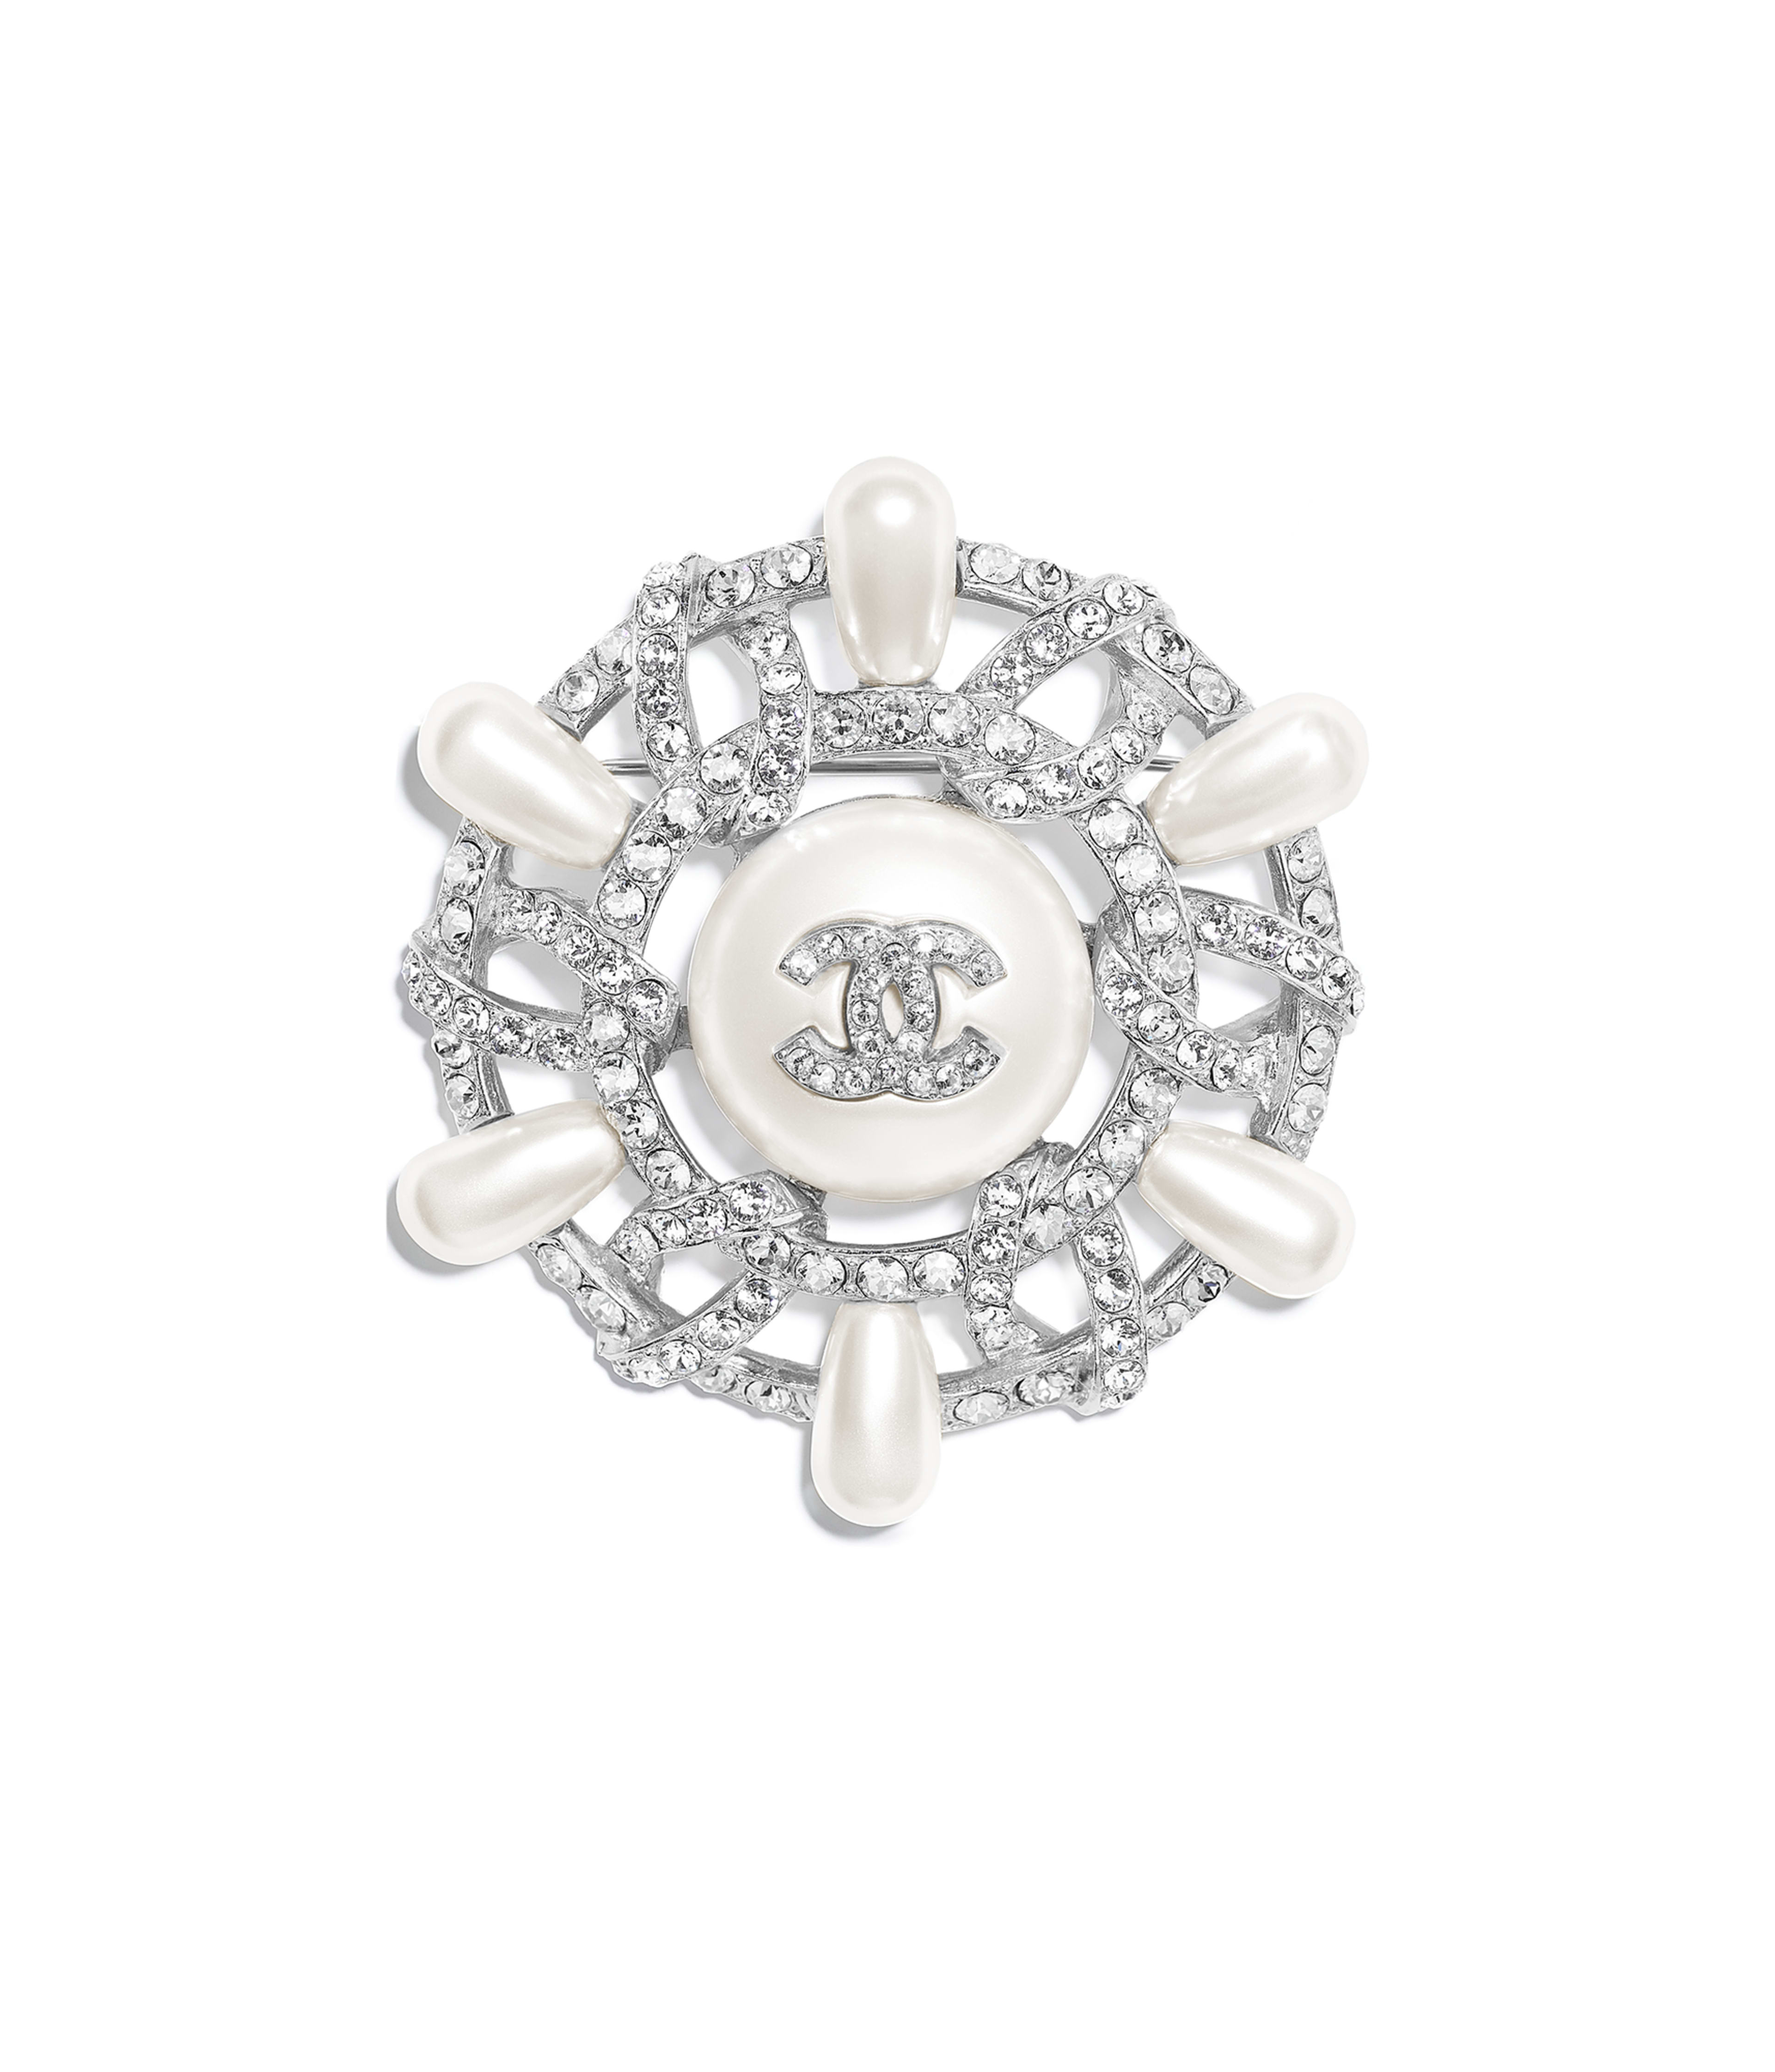 c of camelia tale chanel lifestyle brooch collection img and double brooches